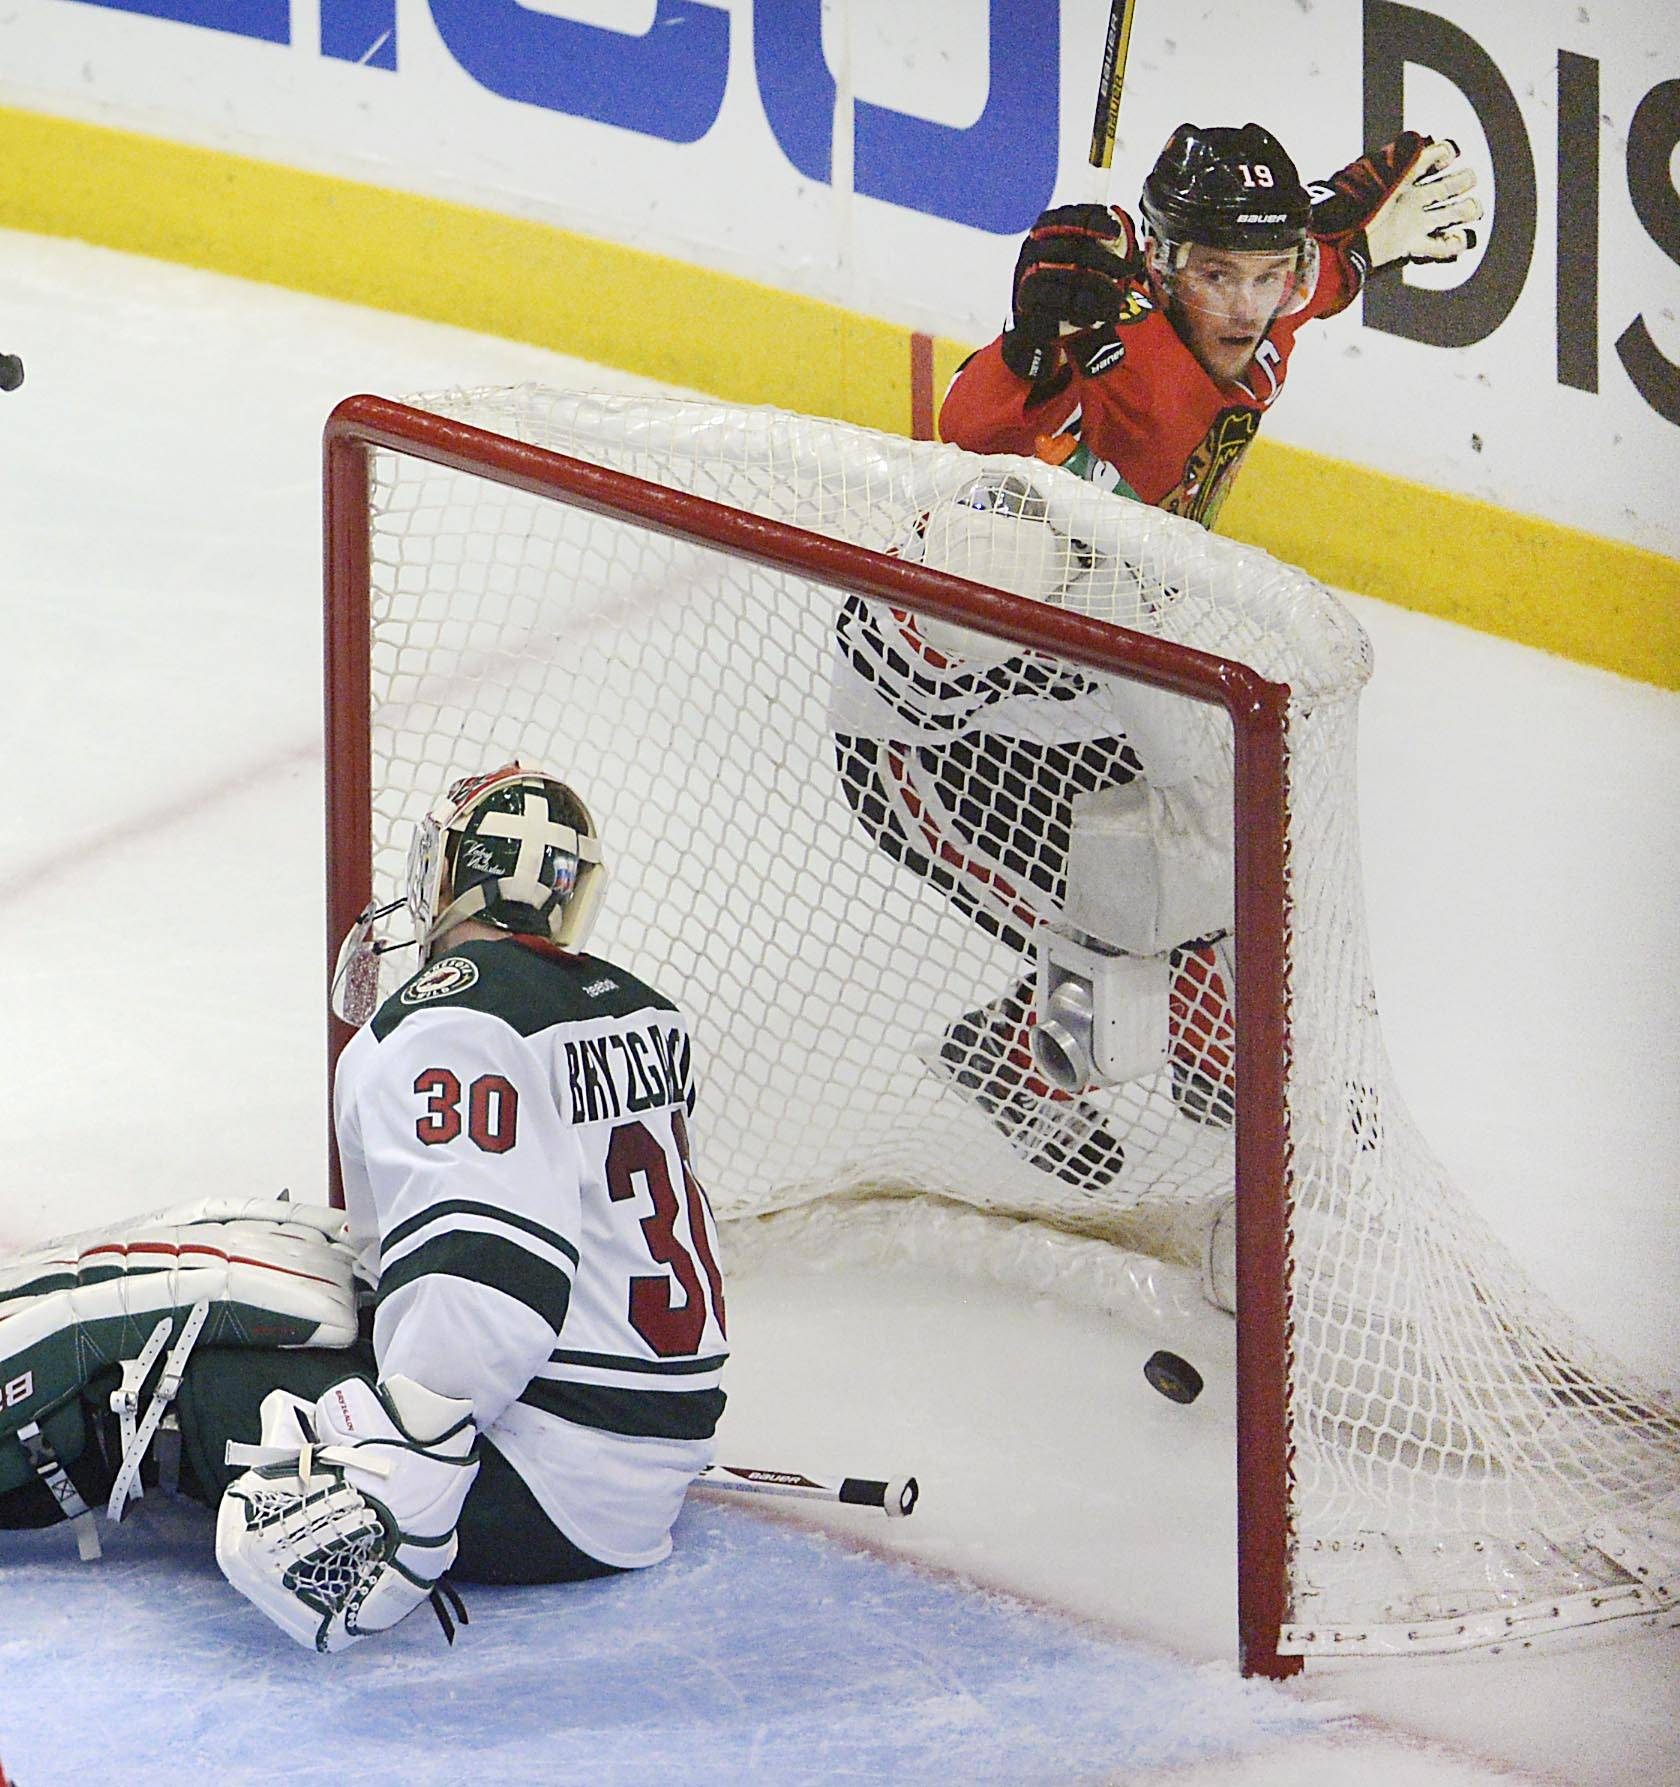 Chicago Blackhawks center Jonathan Toews celebrates after Bryan Bickell's second period goal as he circles the net behind Minnesota Wild goalie Ilya Bryzgalov Sunday in Game 5 of round 2 of the Stanley Cup Playoffs at the United Center in Chicago.